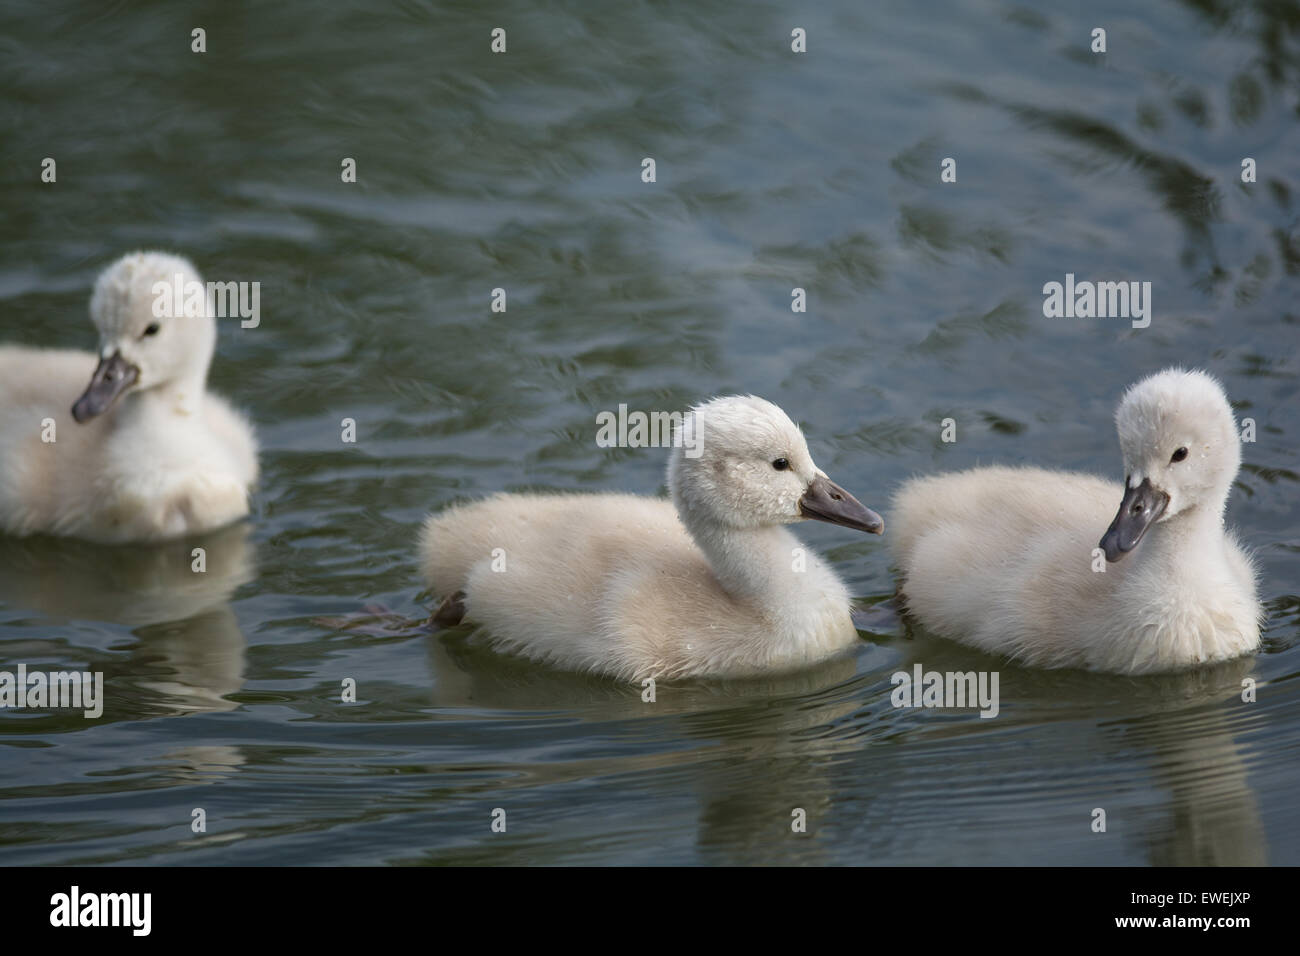 Three young Mute swan (Cygnus olor) cygnets swimming on the surface of a pond. - Stock Image